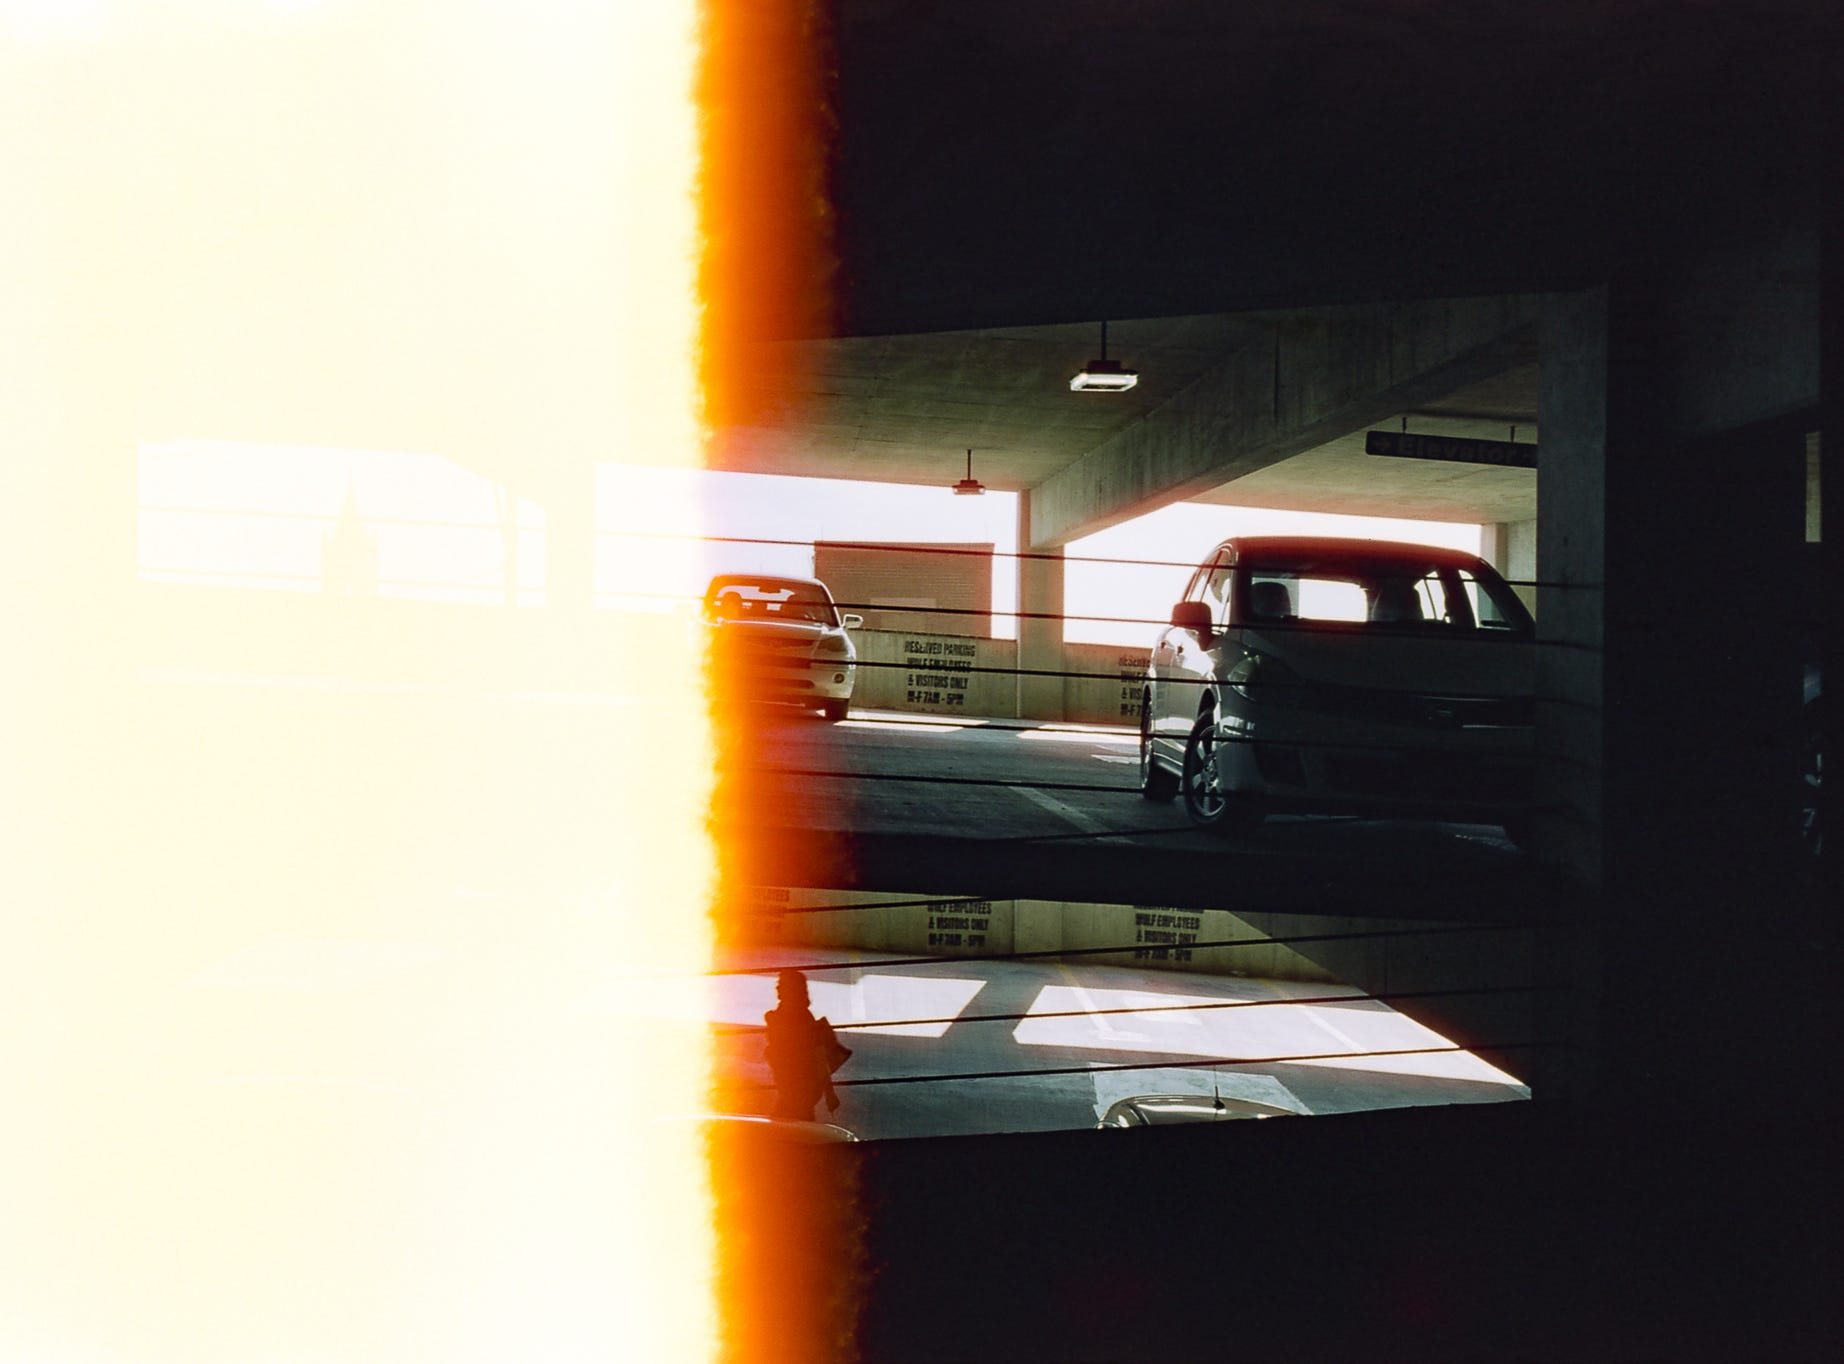 A person walks to their car in the King Street parking garage [Pentax KX] [CineStill 50D]